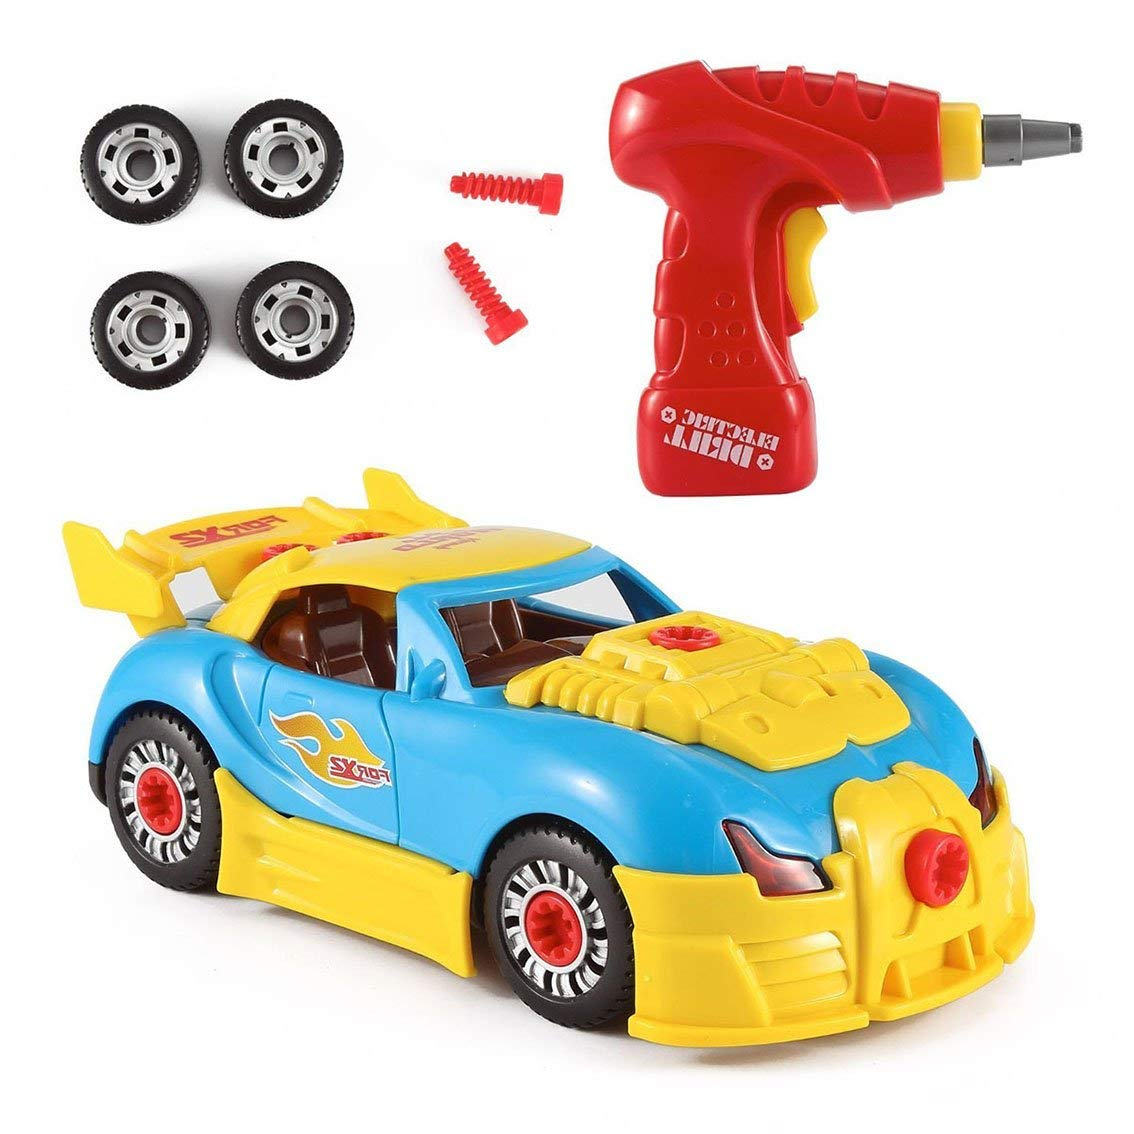 Toys for 2 Year Old Boys, DIMY Take Apart Racing Car Toys Educational Toy Gifts for 3-7 Year Old Boys Toys for kids Mothers Day Gifts DMTC02